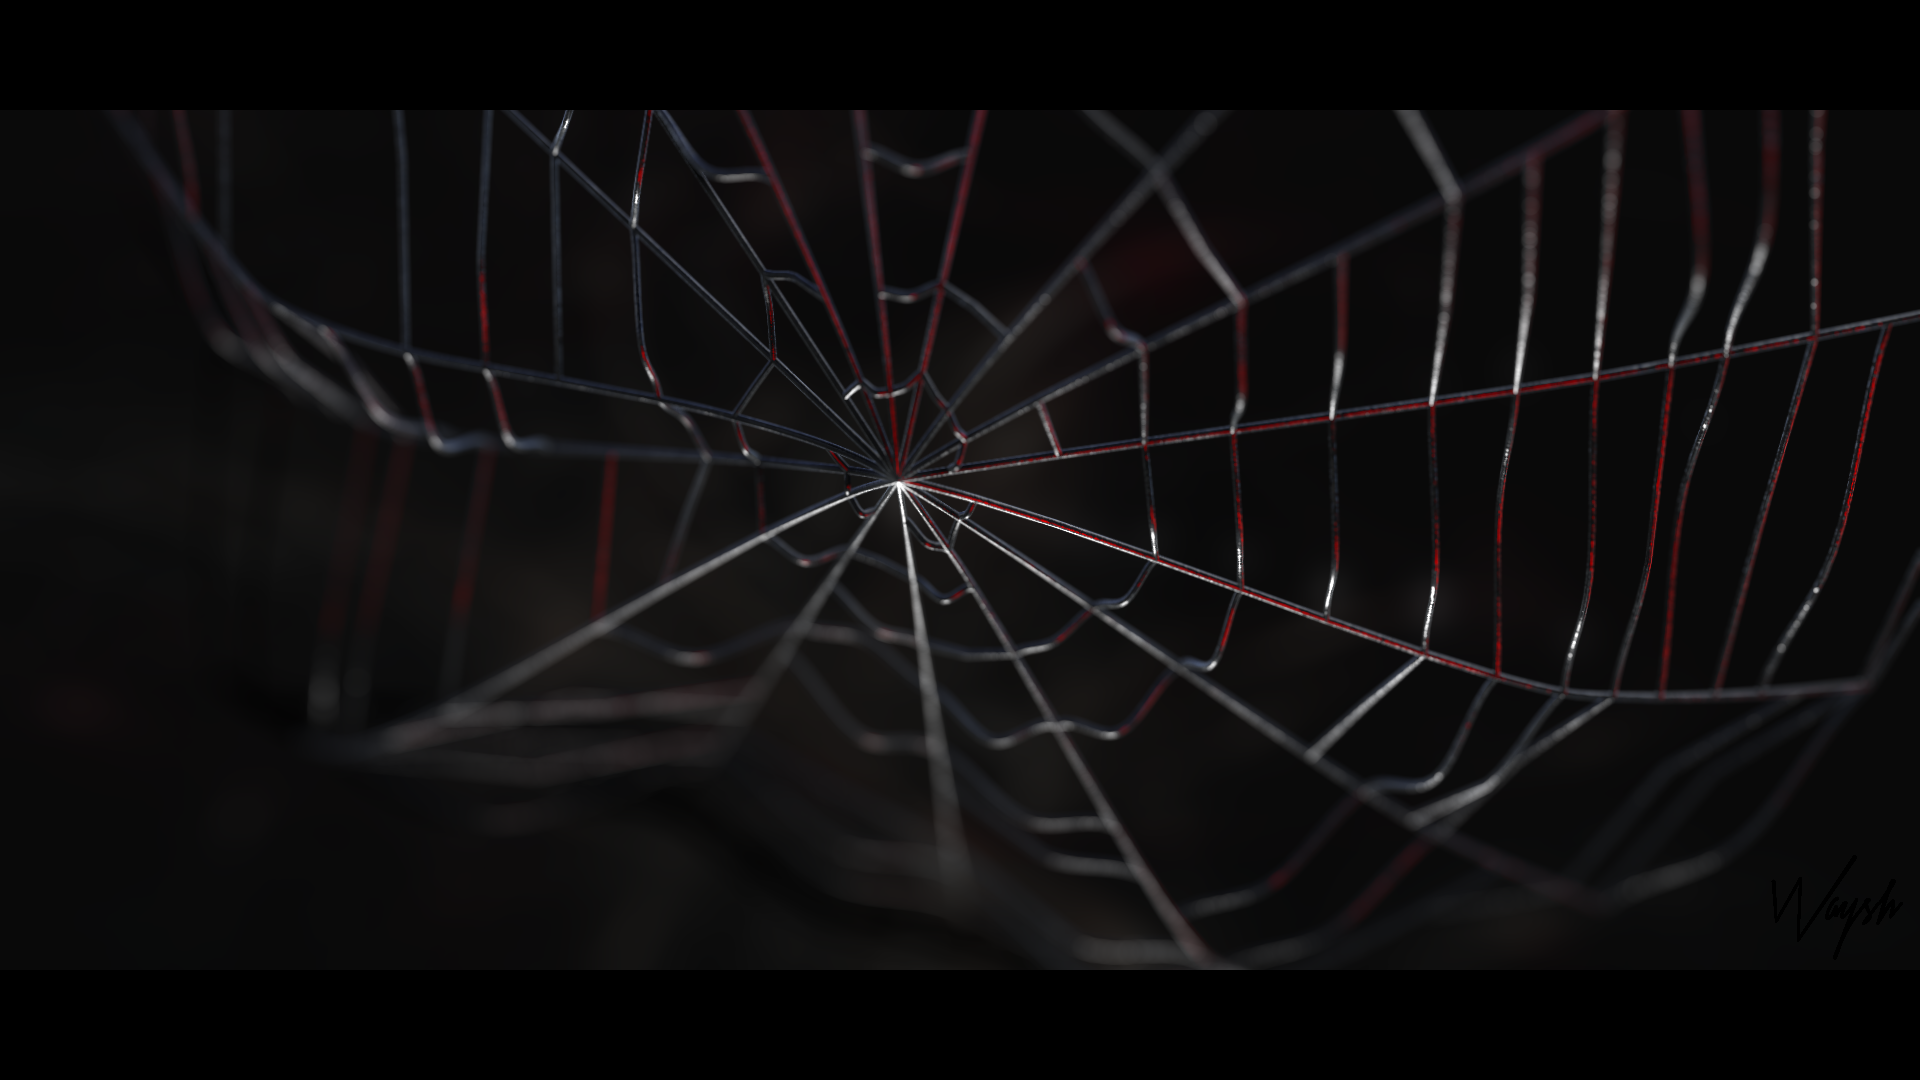 spiderman web 3d artwork by waysh on deviantart